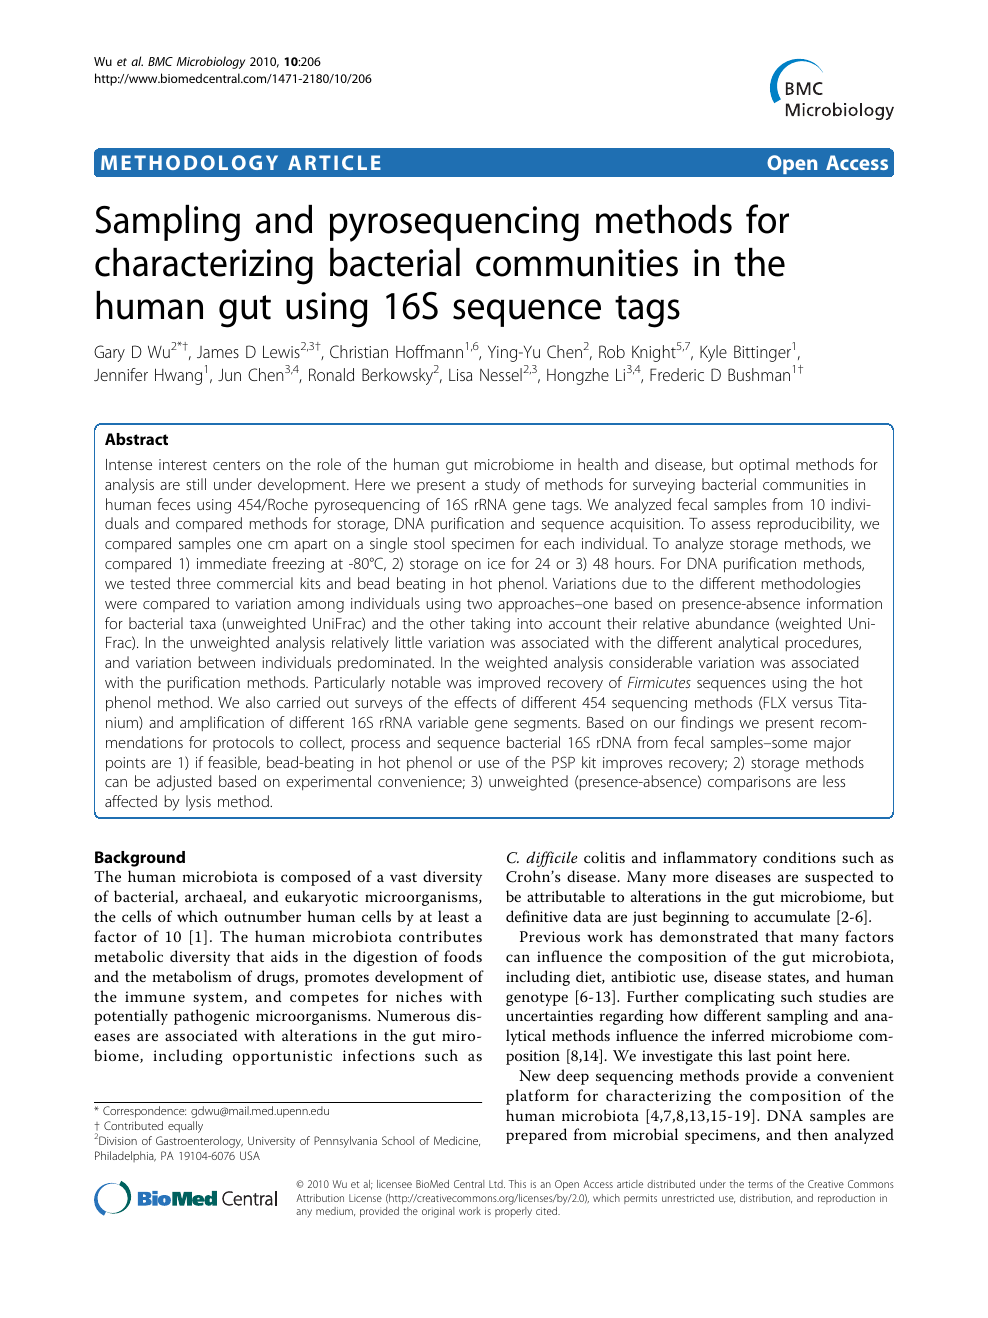 Sampling and pyrosequencing methods for characterizing